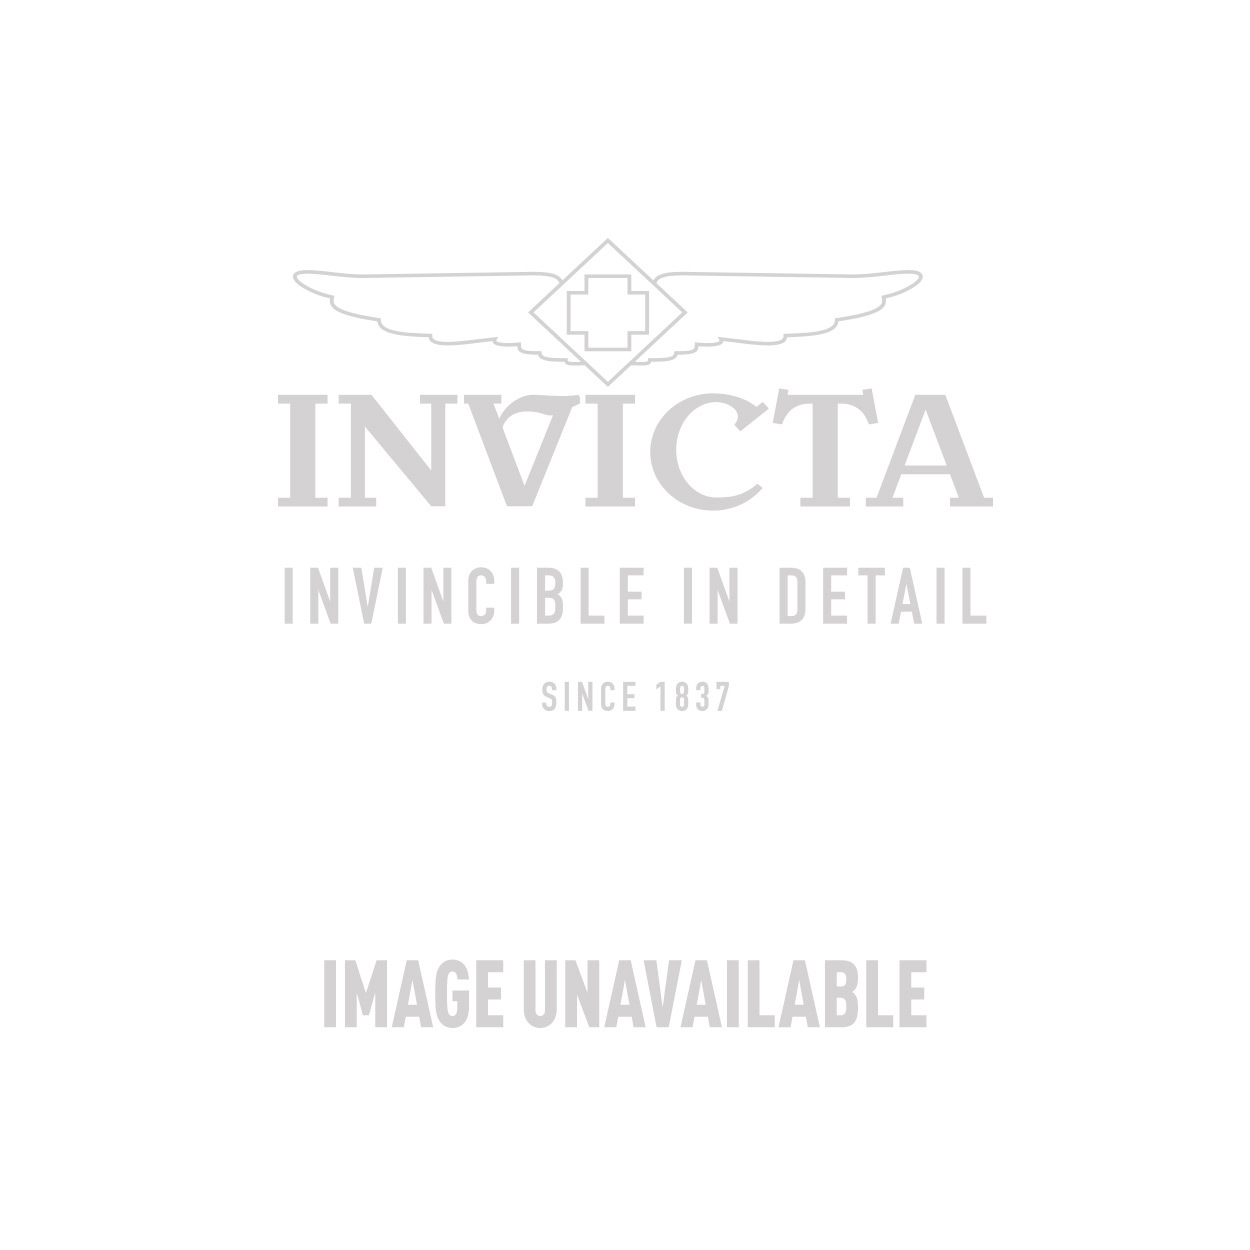 Invicta Speedway Swiss Movement Quartz Watch - Rose Gold, Stainless Steel case Stainless Steel band - Model 19635